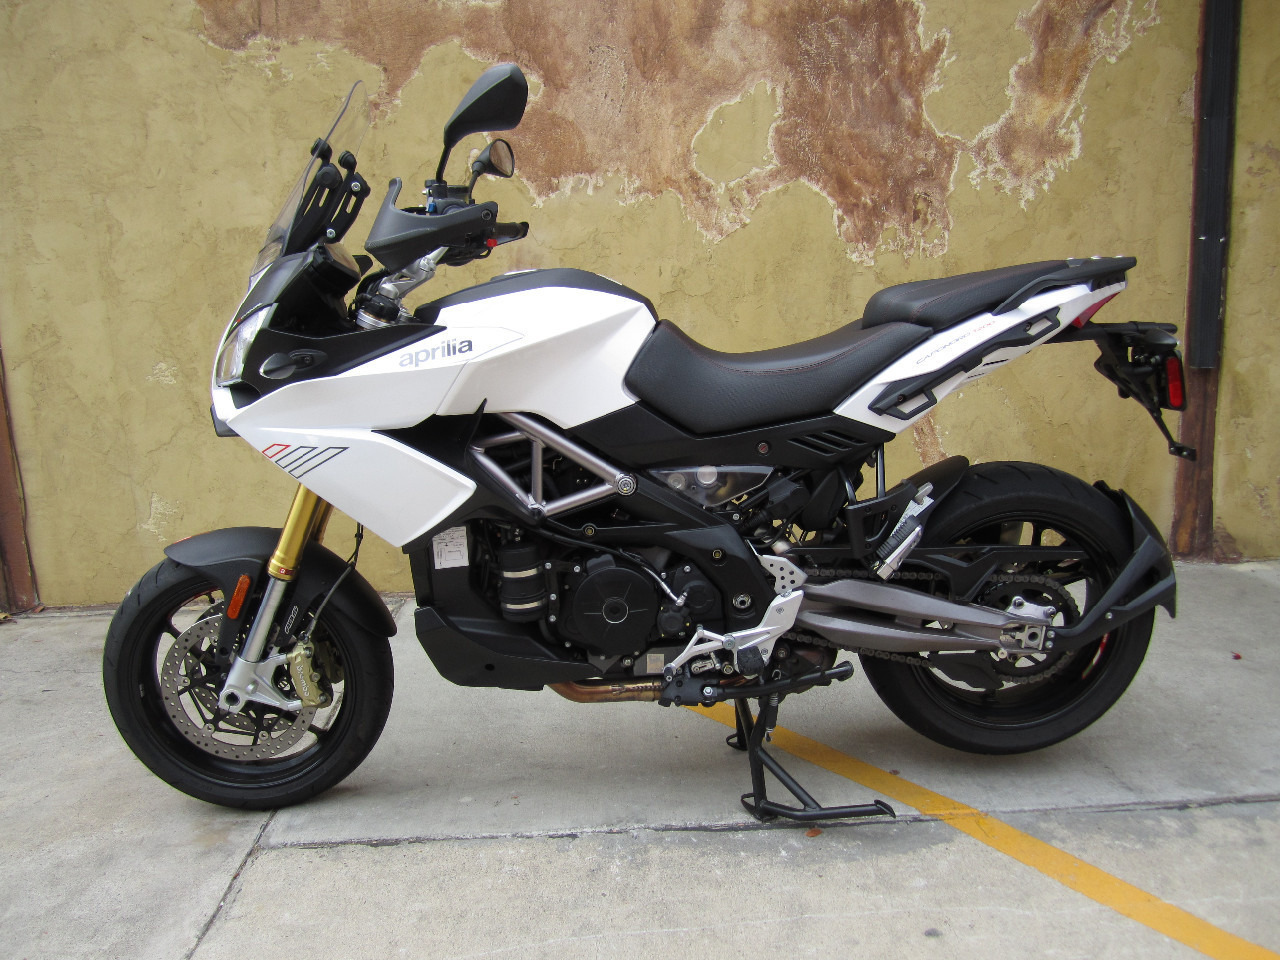 2015 Aprilia Caponord 1200, motorcycle listing